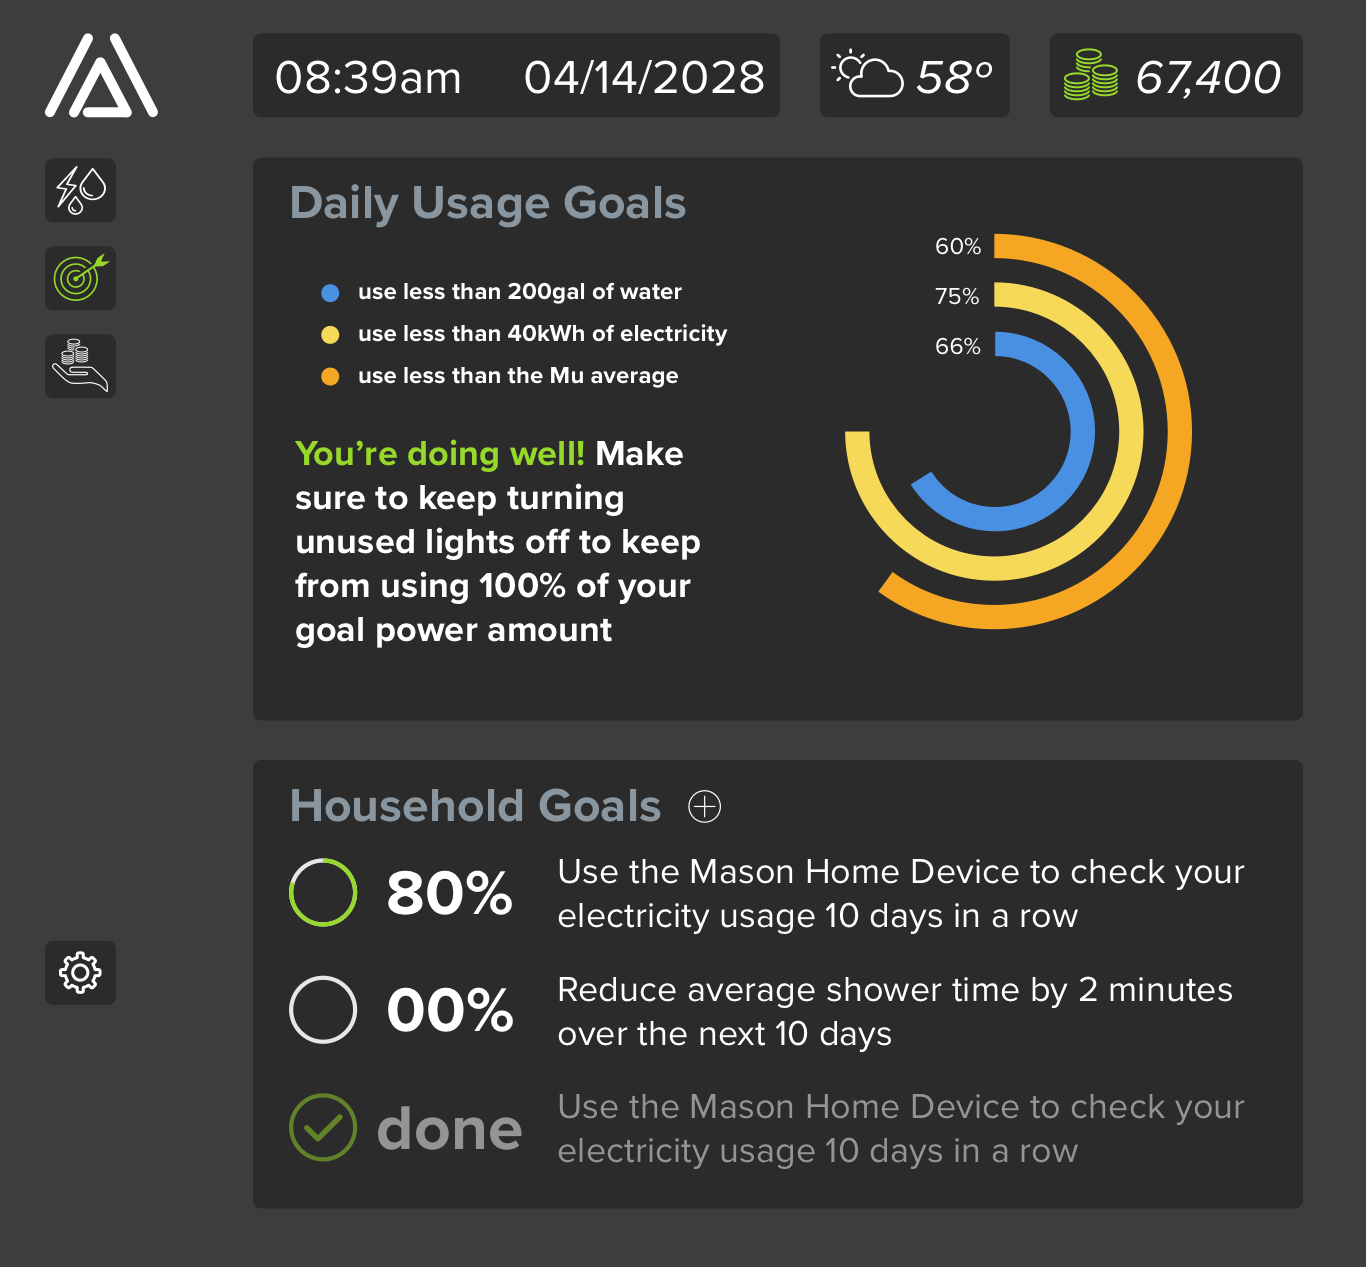 Goals —  The goals are either set by the users or they are suggested based on data from other Mason Homes with similar family units.